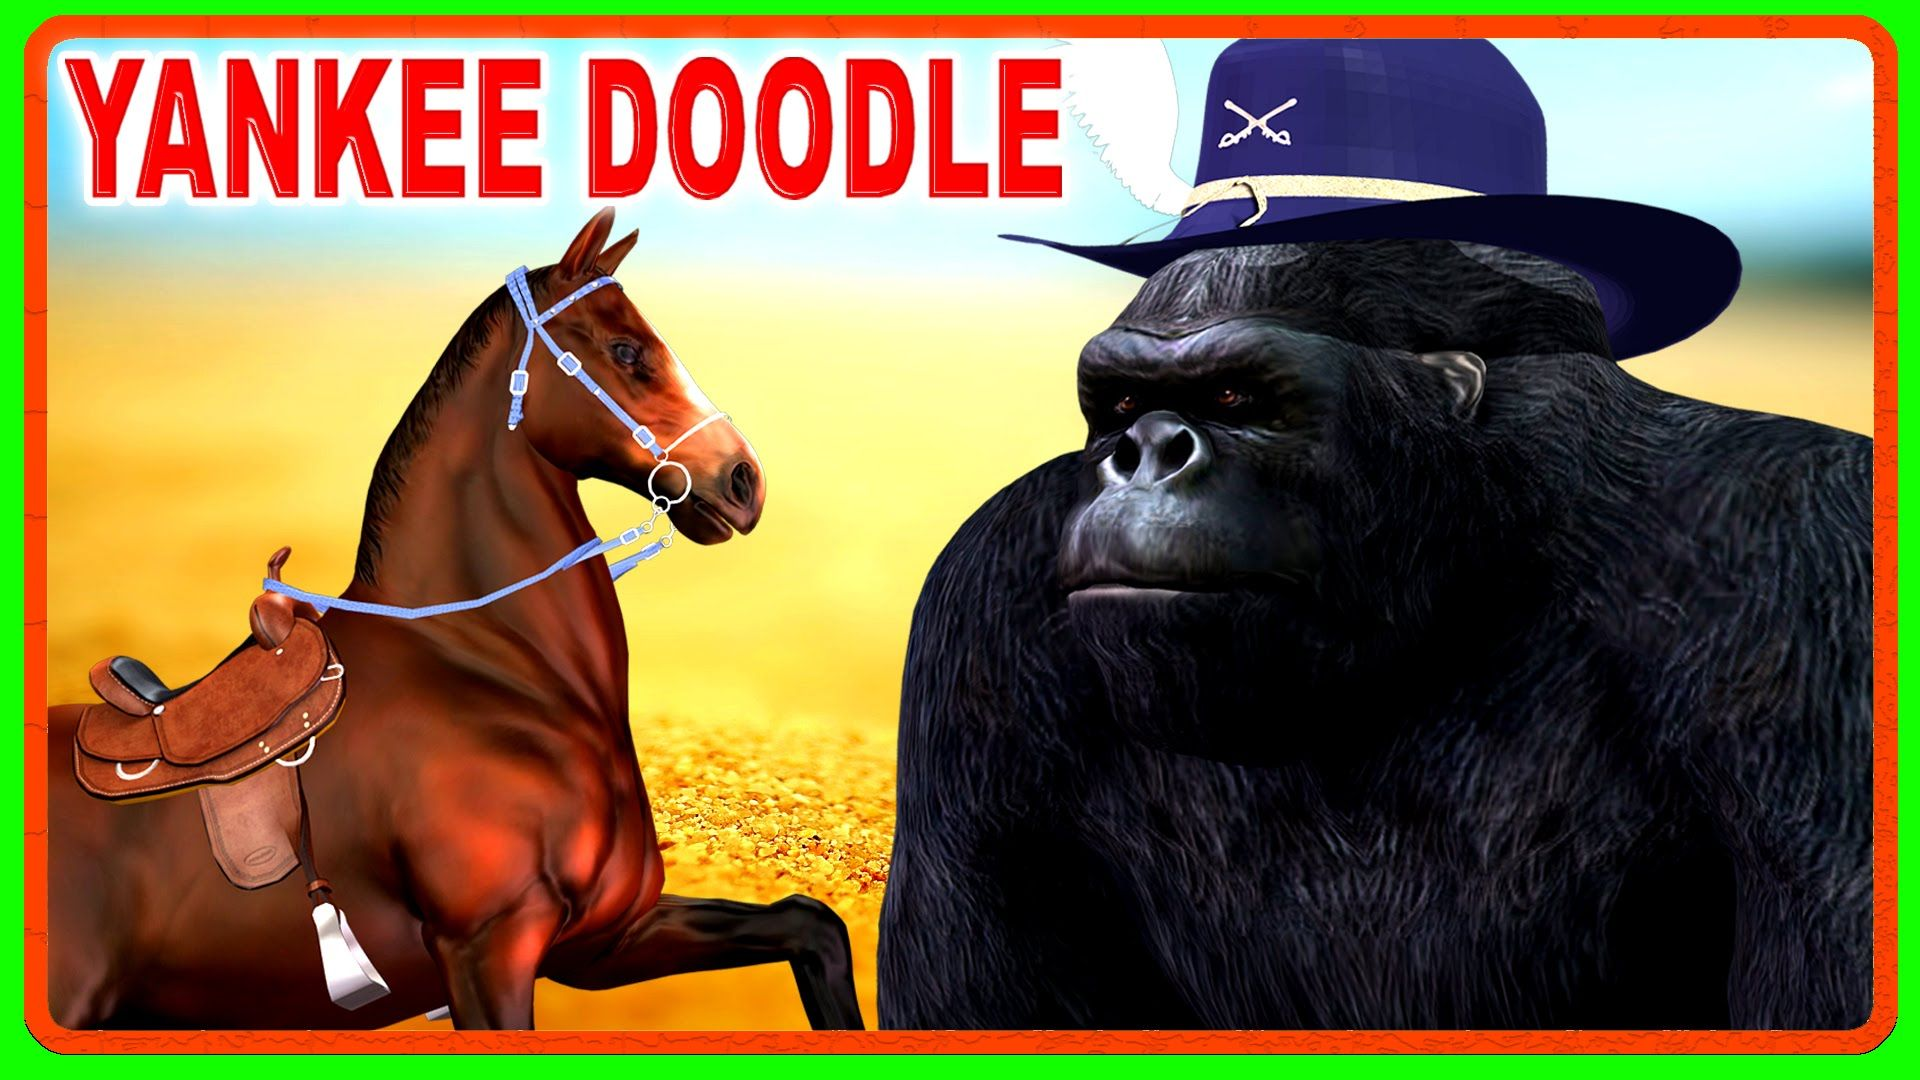 King Kong Gorilla Riding On Horse Singing Nursery Rhymes